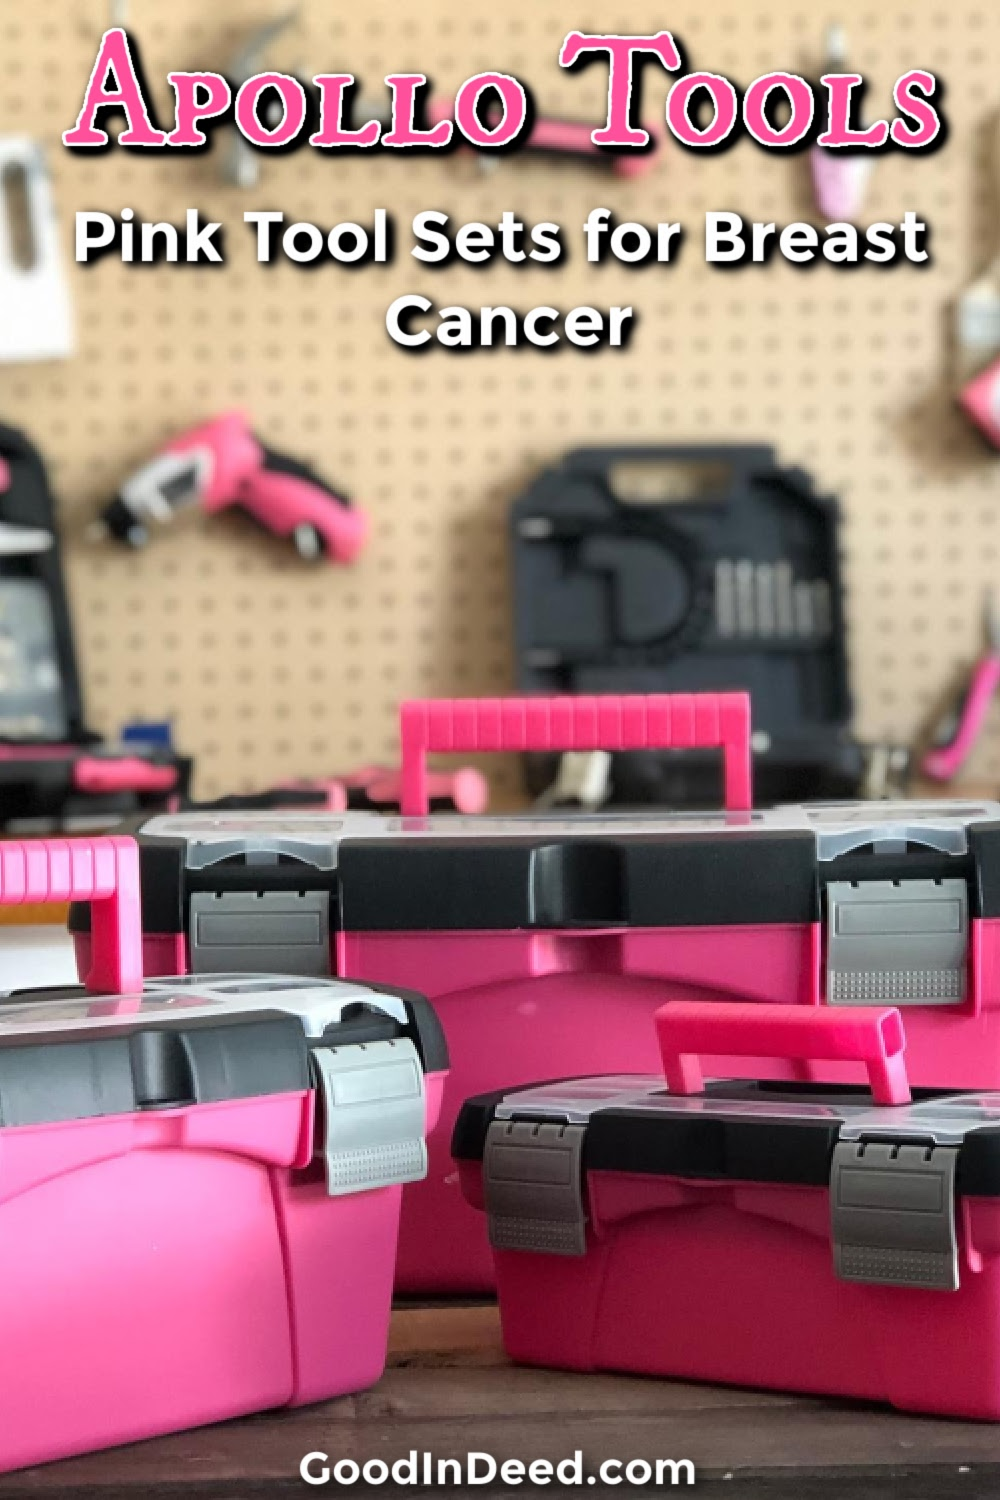 A pink Apollo Tools set will not only help you hang those pictures and keep them level, it could help fix breast cancer and make it a thing of the past.